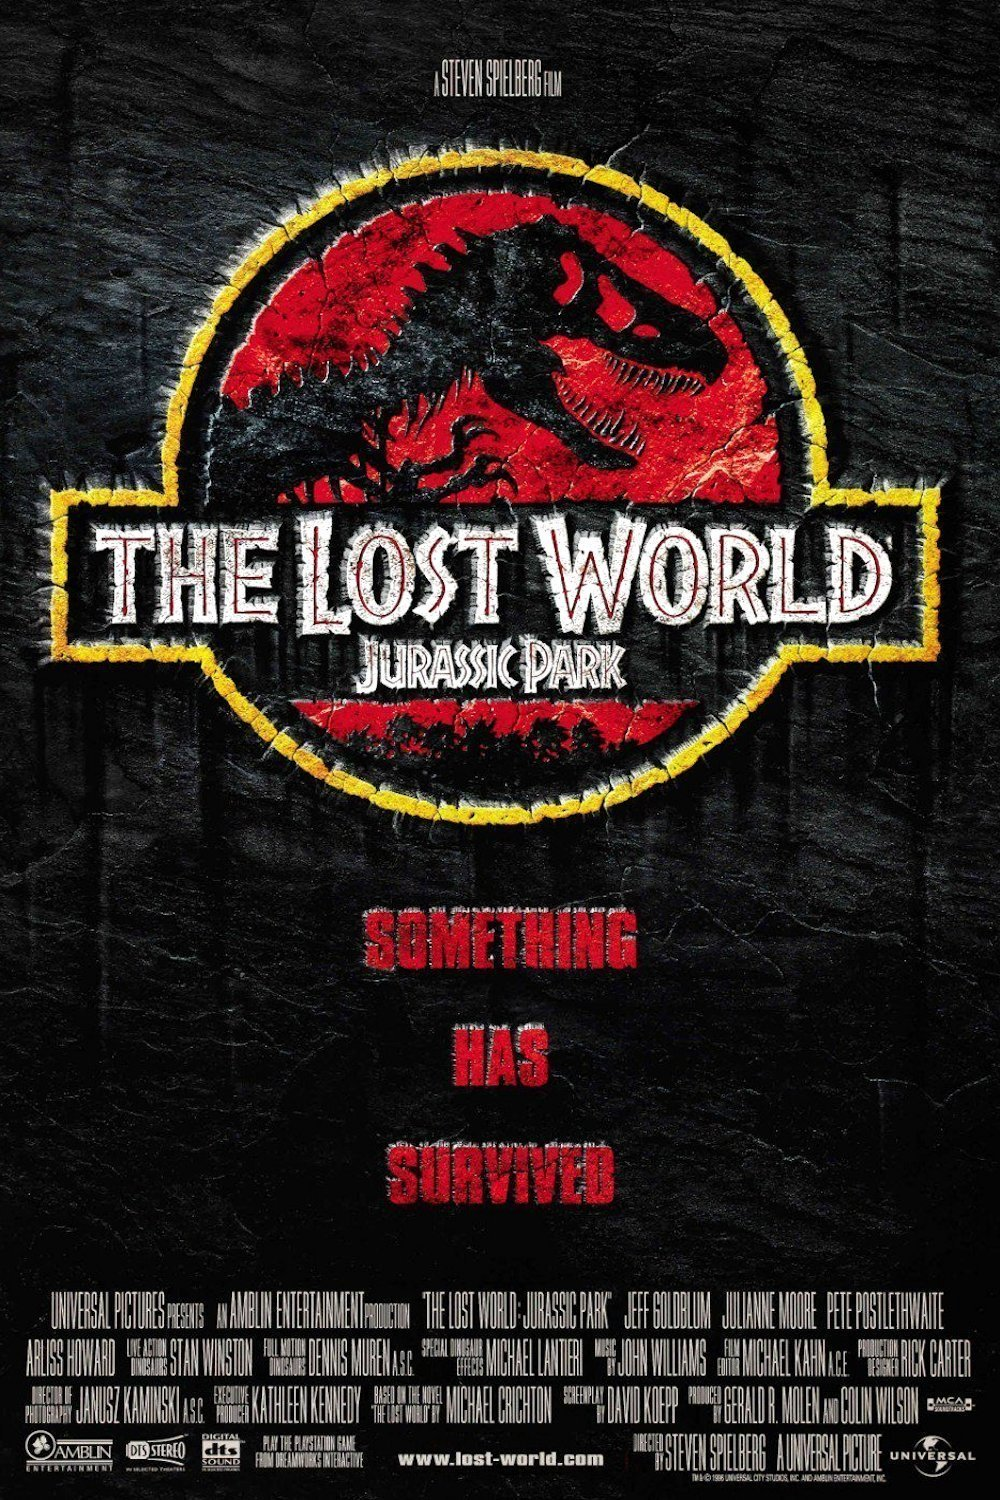 The Lost World: Jurassic Park poster